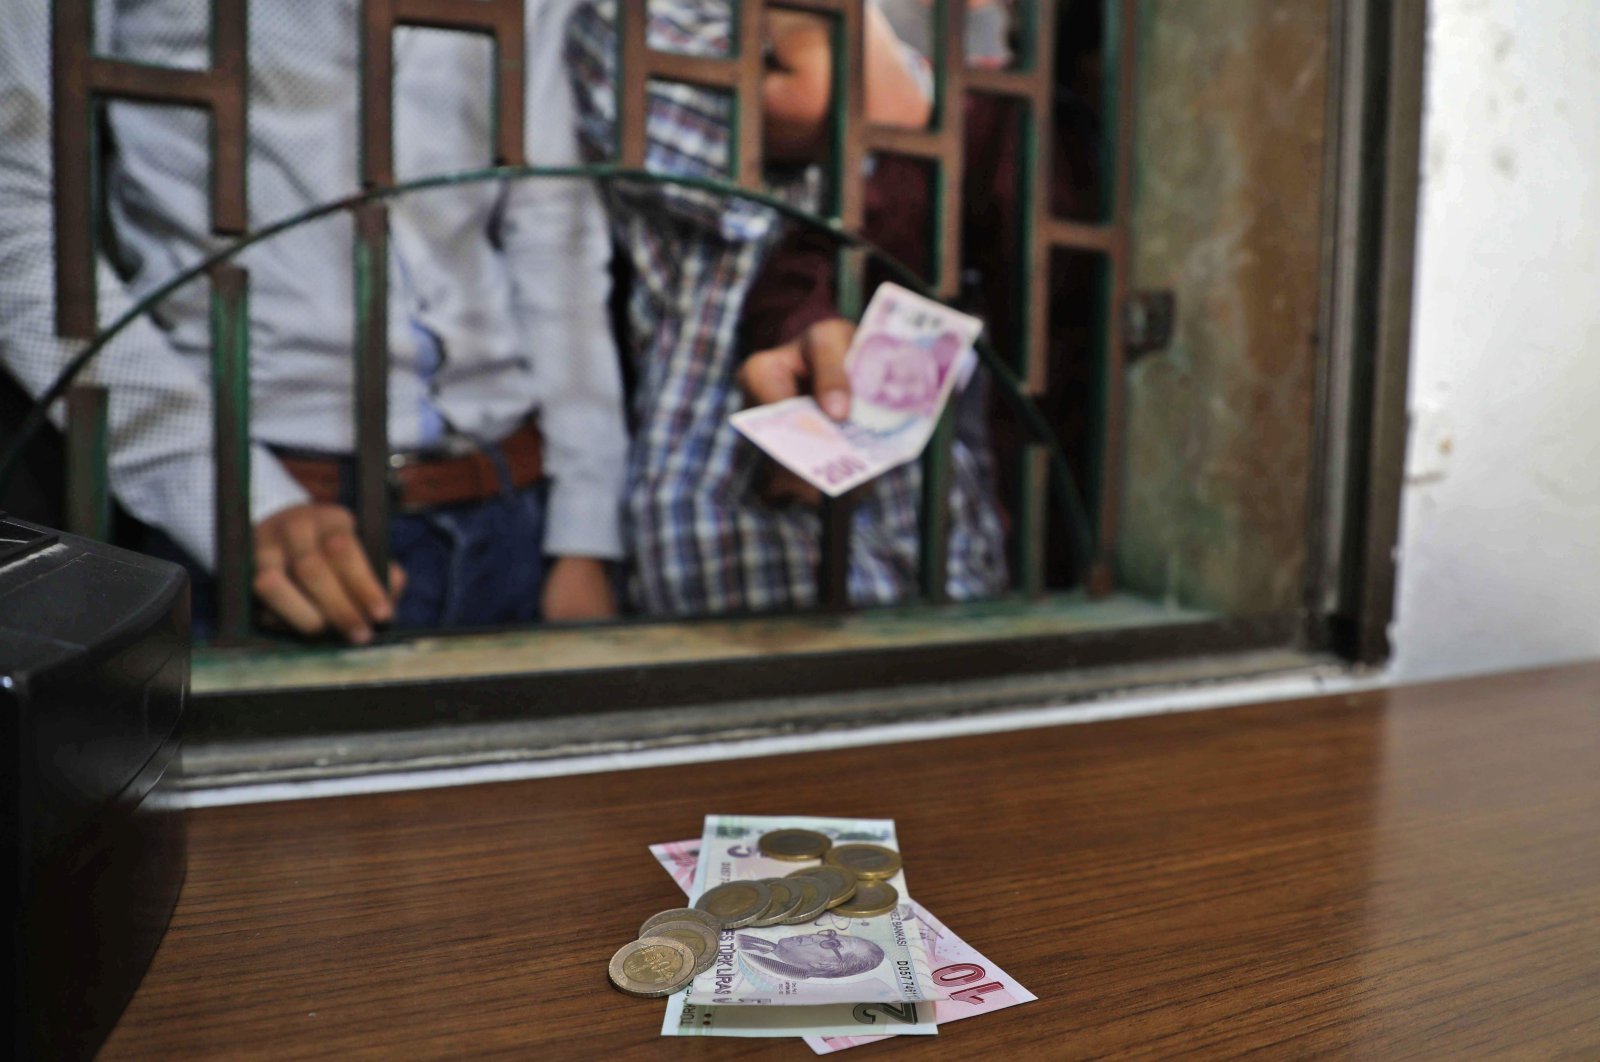 Syrians receive Turkish liras at a currency exchange shop in the town of Sarmada in Syria's northwestern Idlib province, June 15, 2020. (AFP Photo)